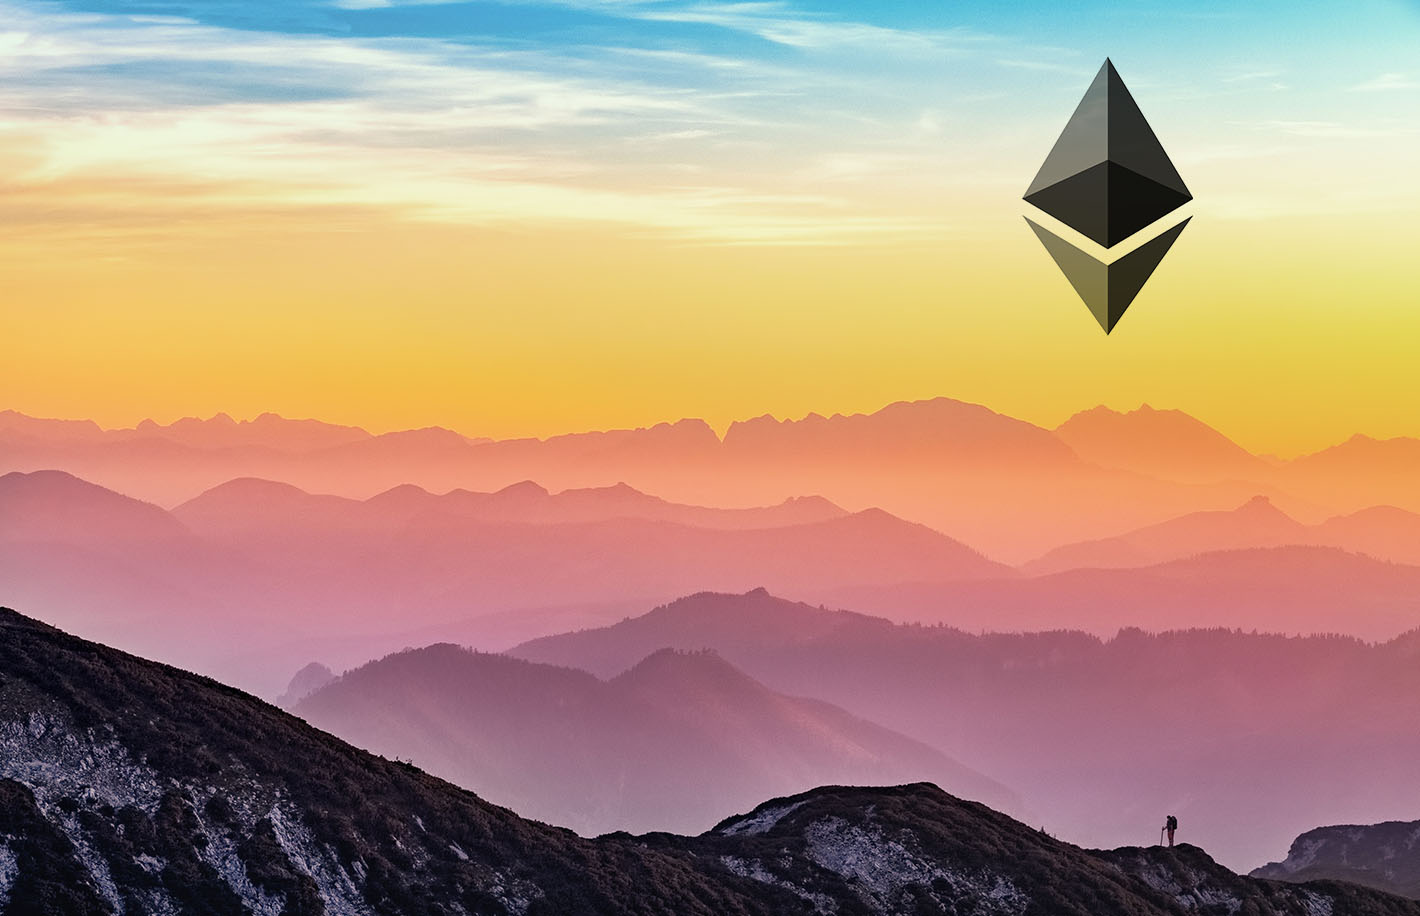 Valid Takes: More Ethereum Upgrades to Come After Proof of Stake, Buterin Says